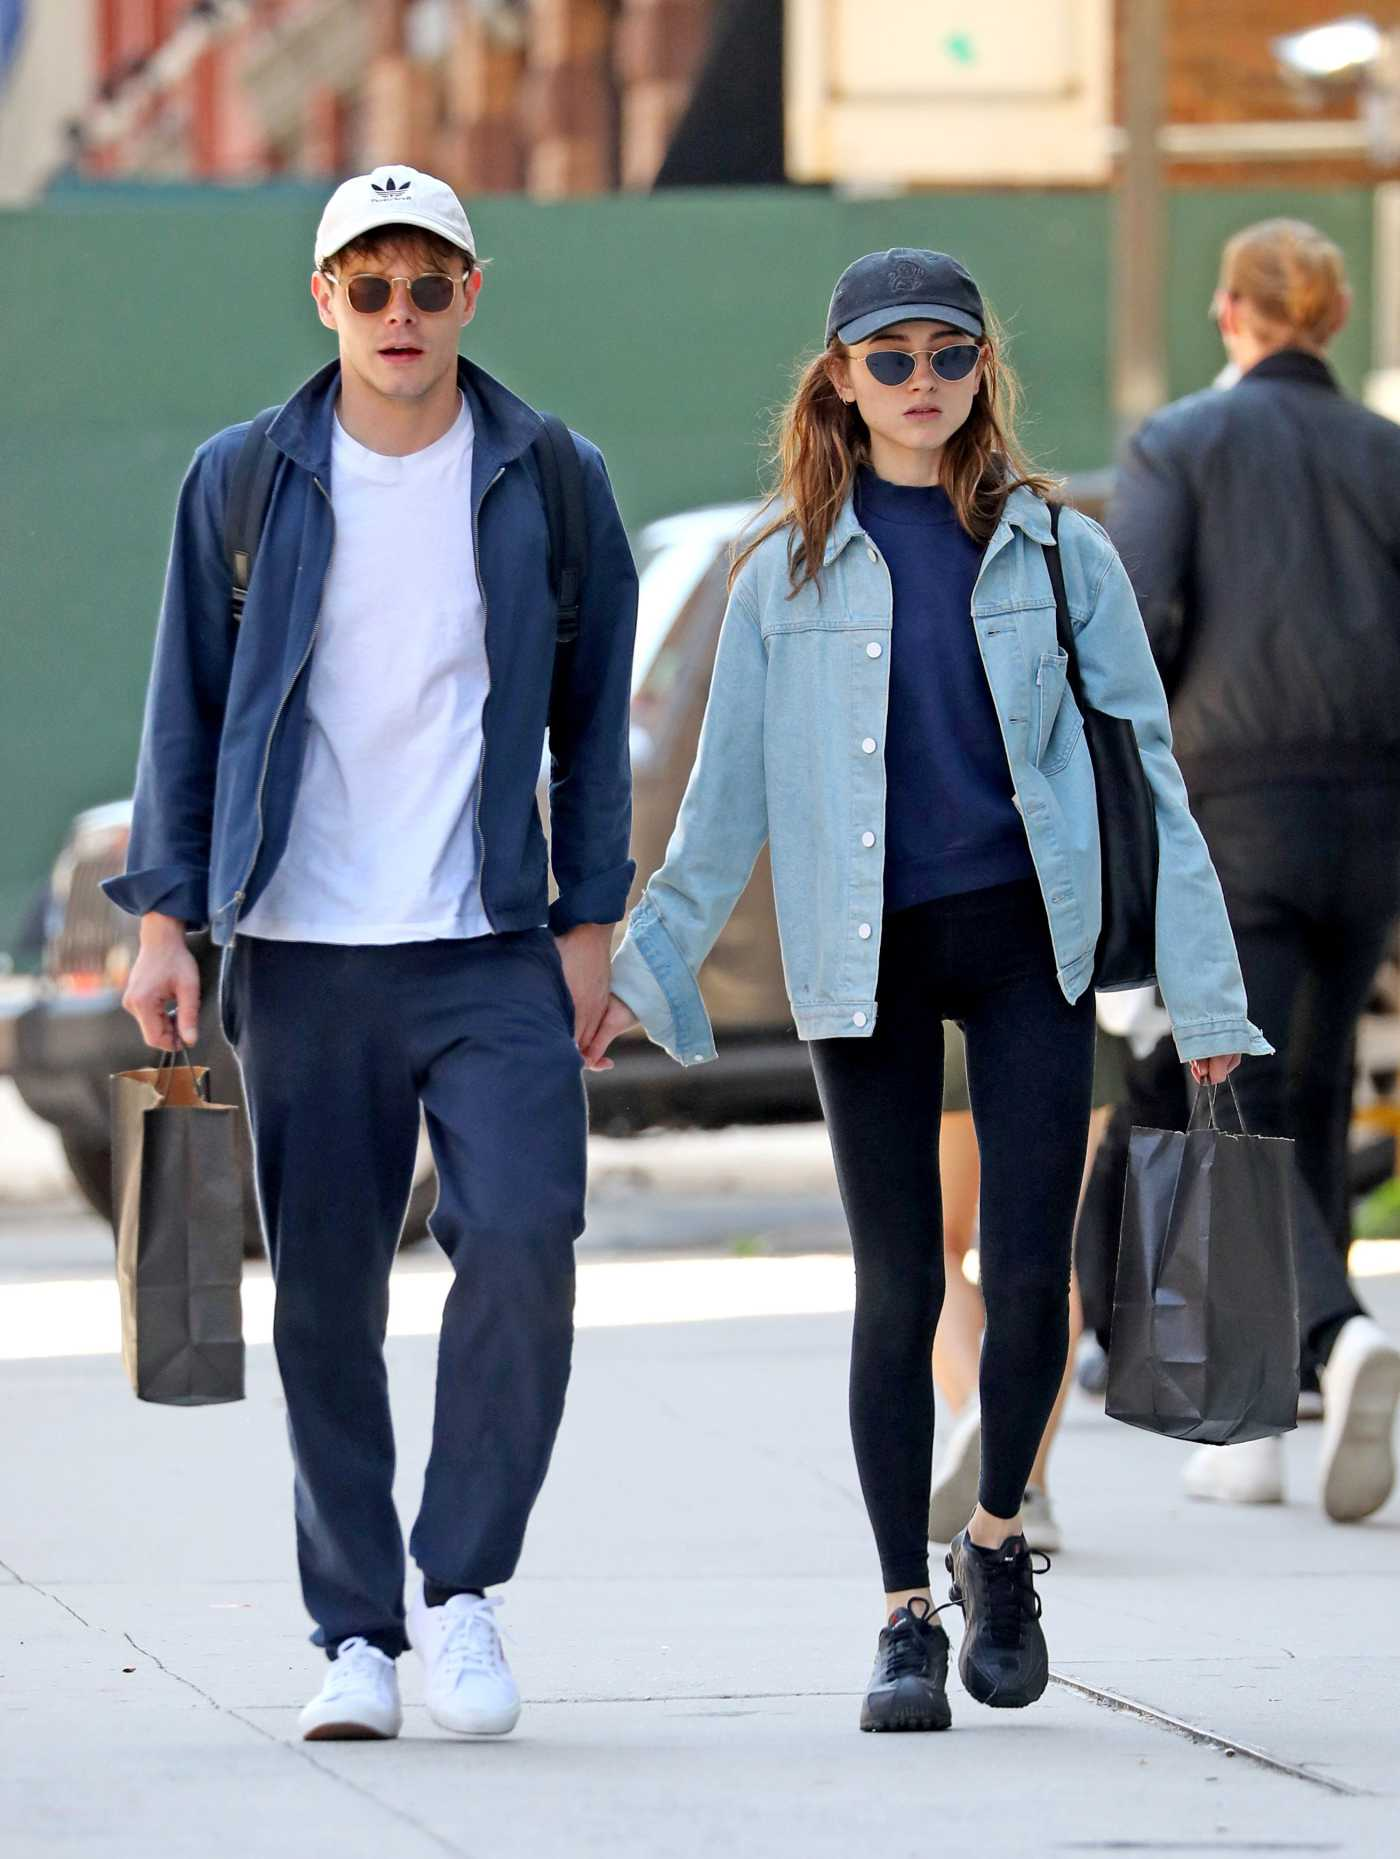 Natalia Dyer Goes Shopping Out with Charlie Heaton in NYC 06/03/2019